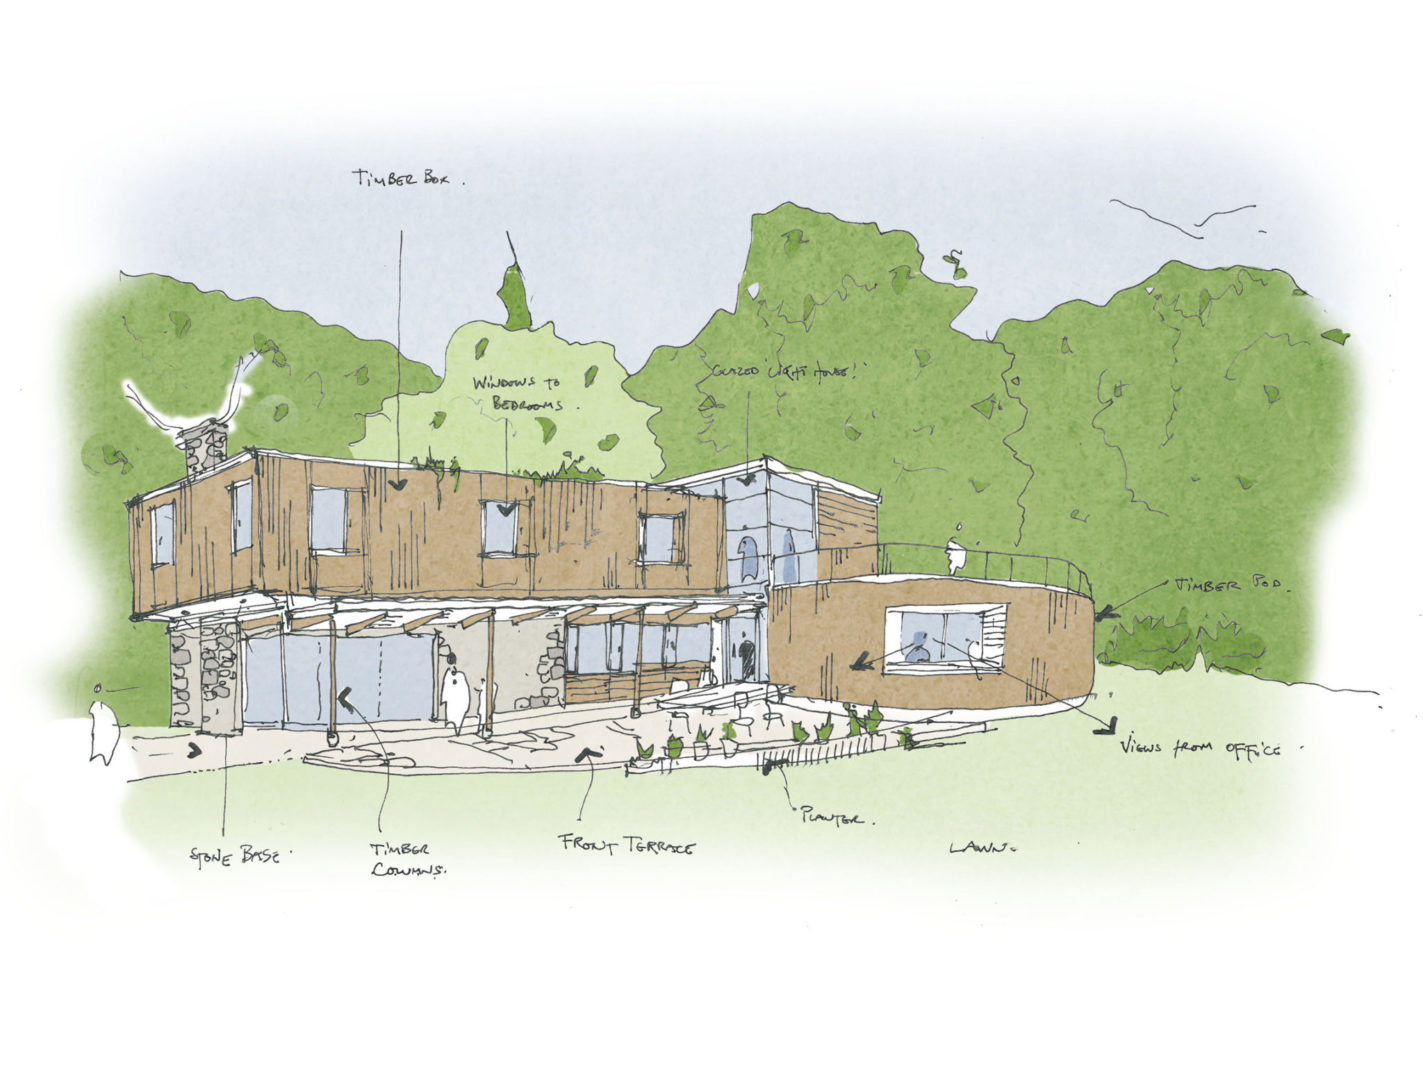 Burl designs progressing – Rud Sawers Architects, Devon